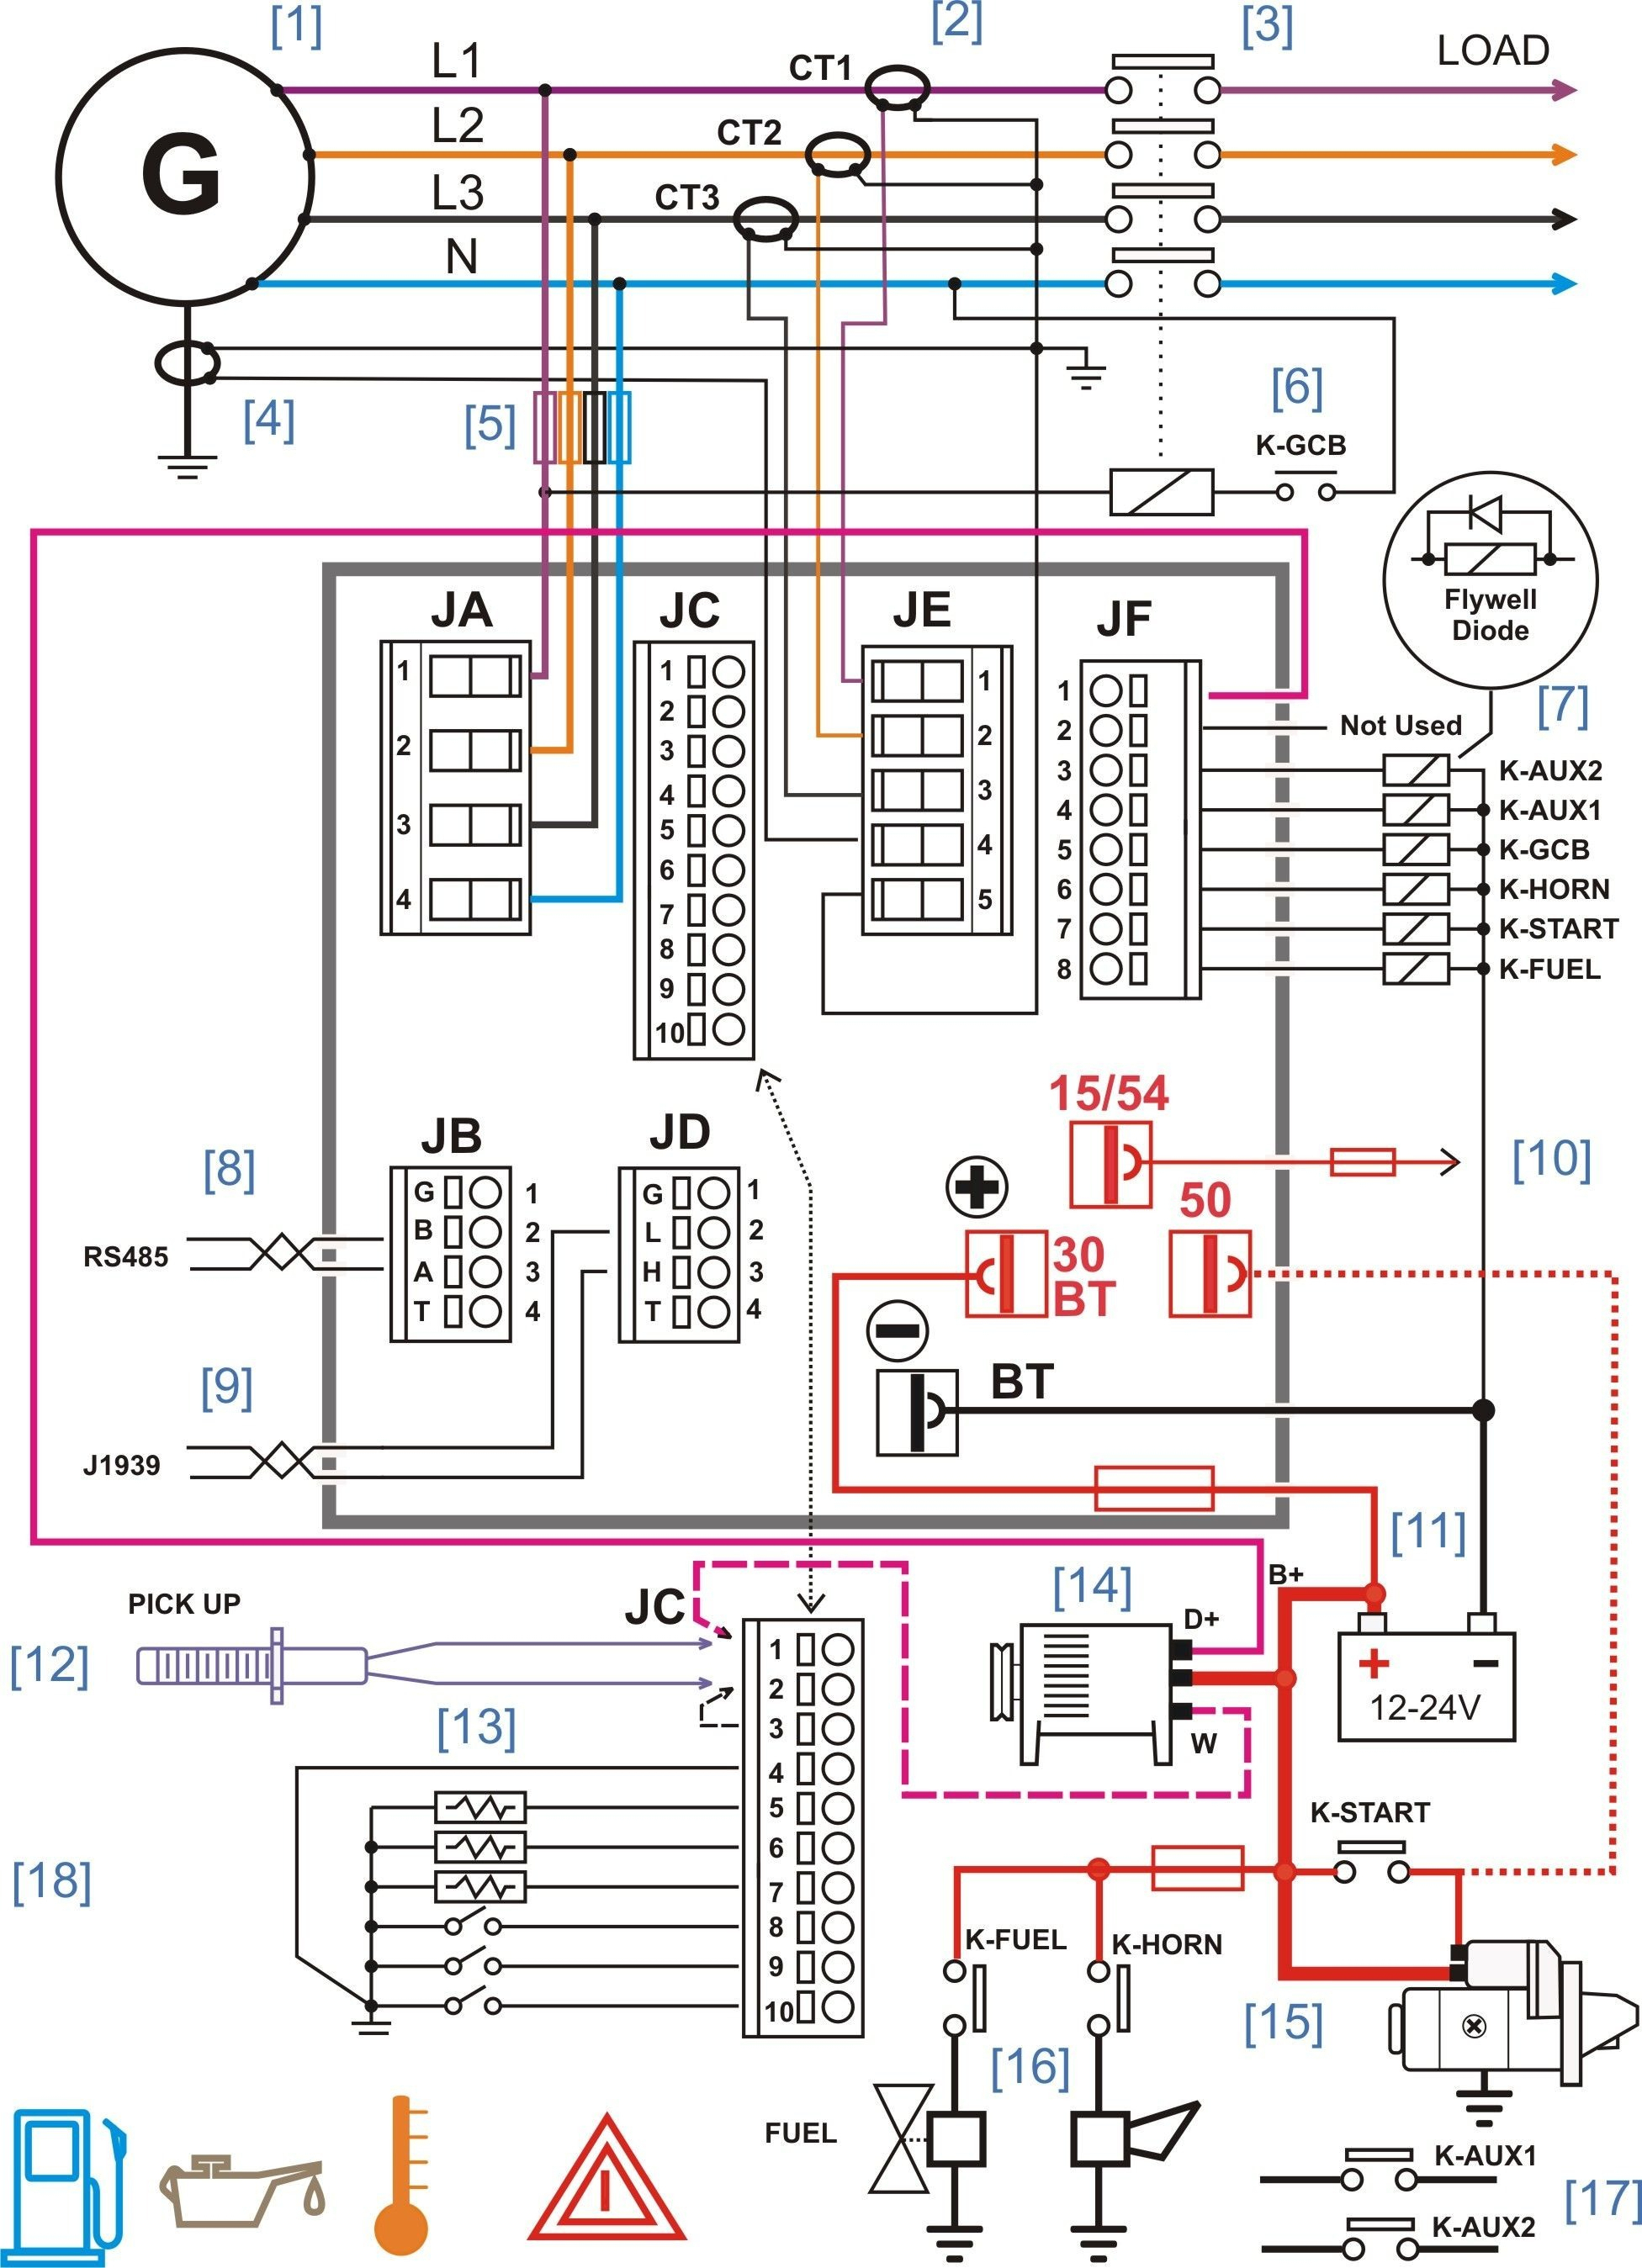 Gallery Of Electrical Wiring Diagram Software Open Source Sample - Wiring Diagram Software Open Source